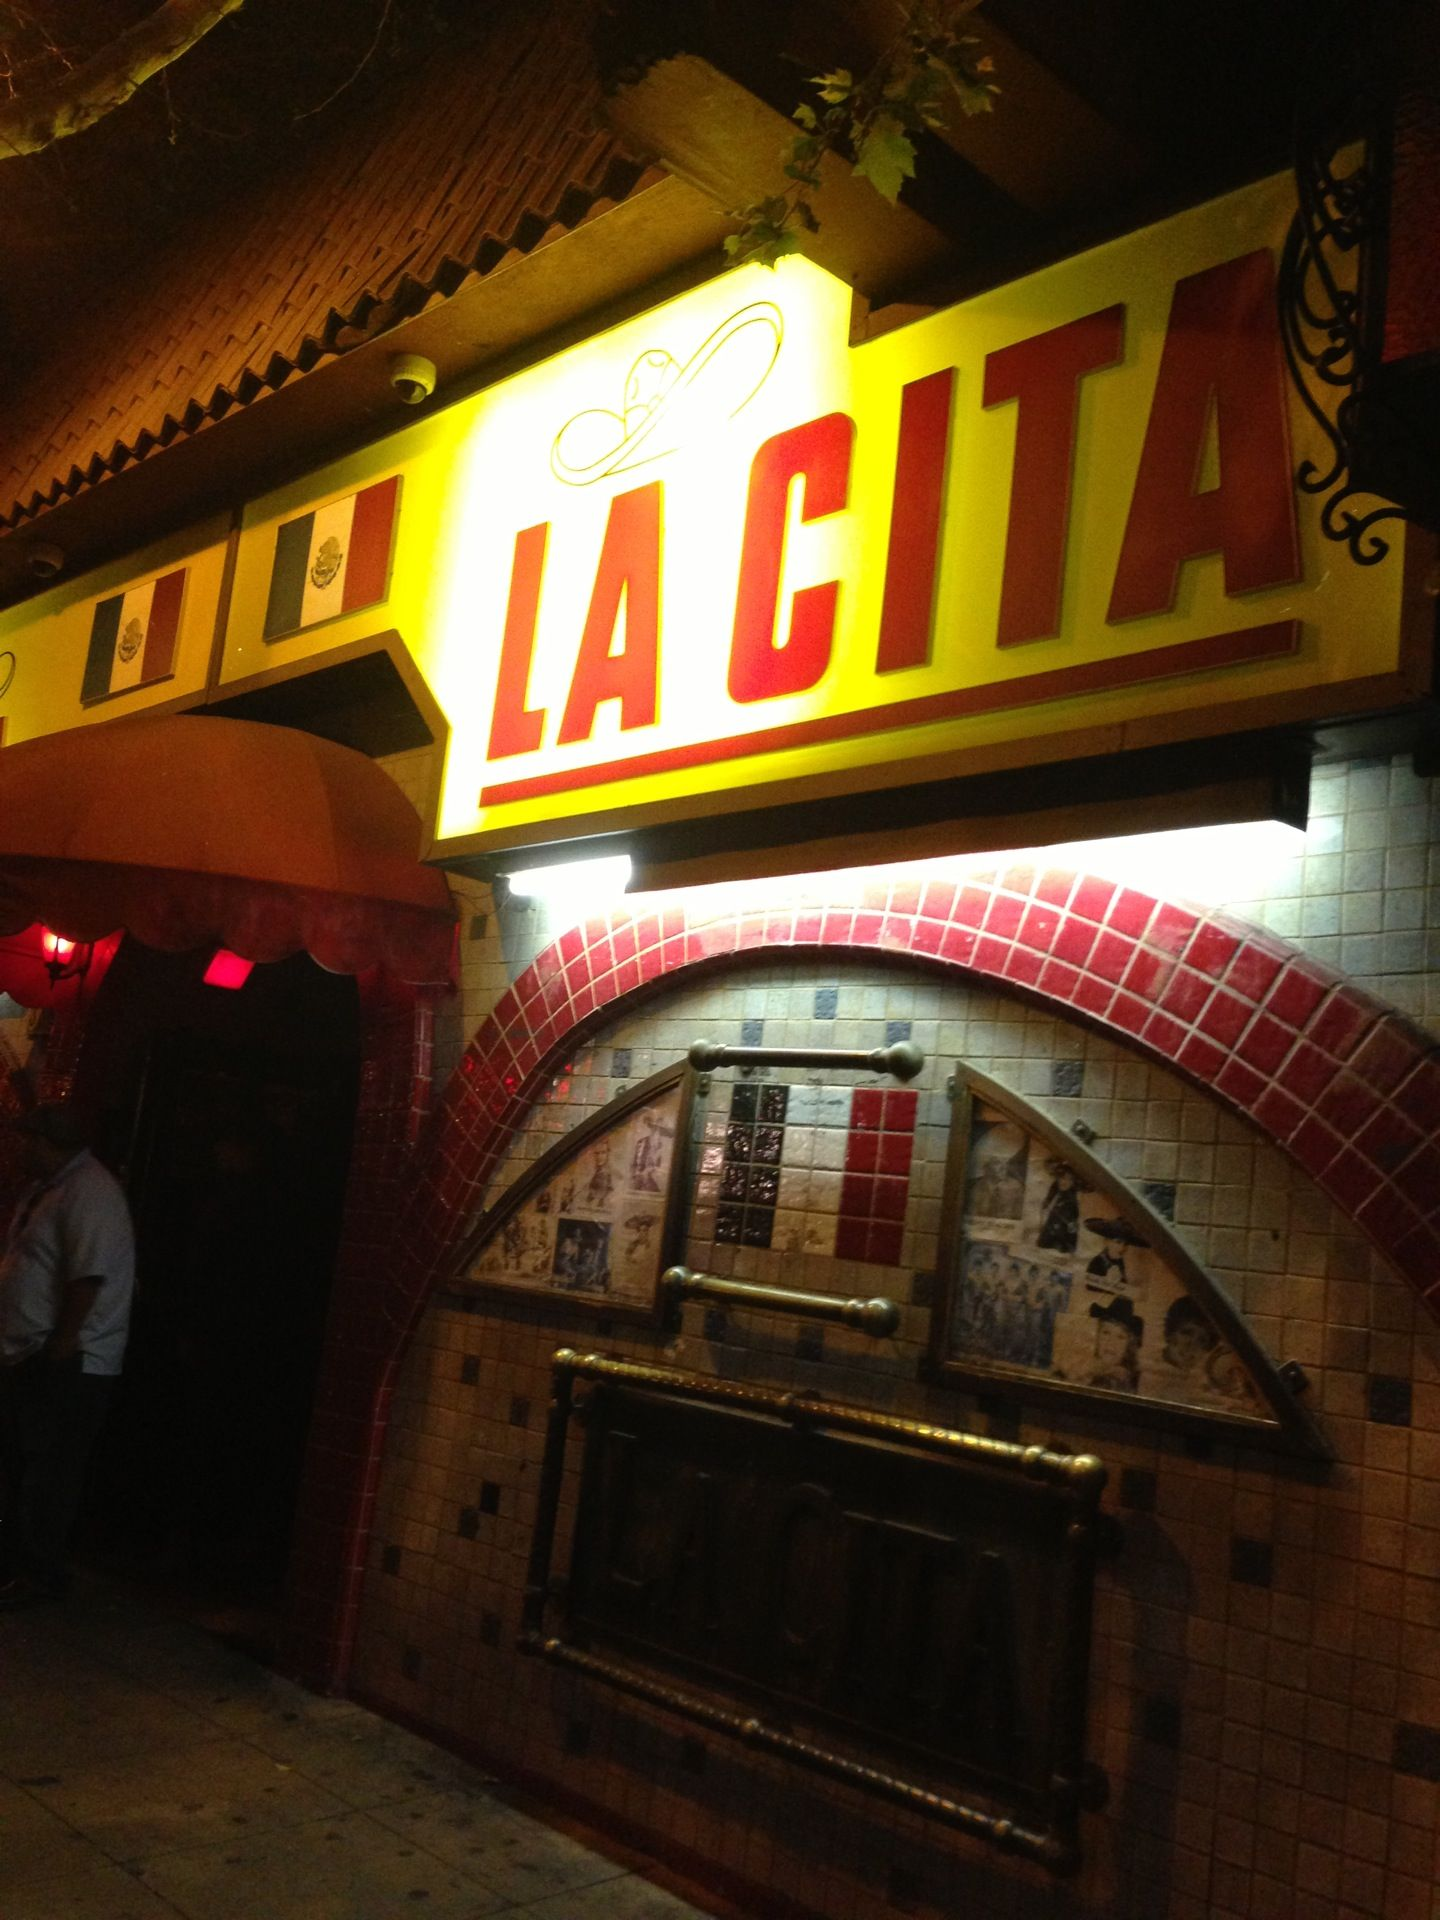 La Cita Bar. They play all types of music, there's a dance floor for dancing and a back for relaxing.